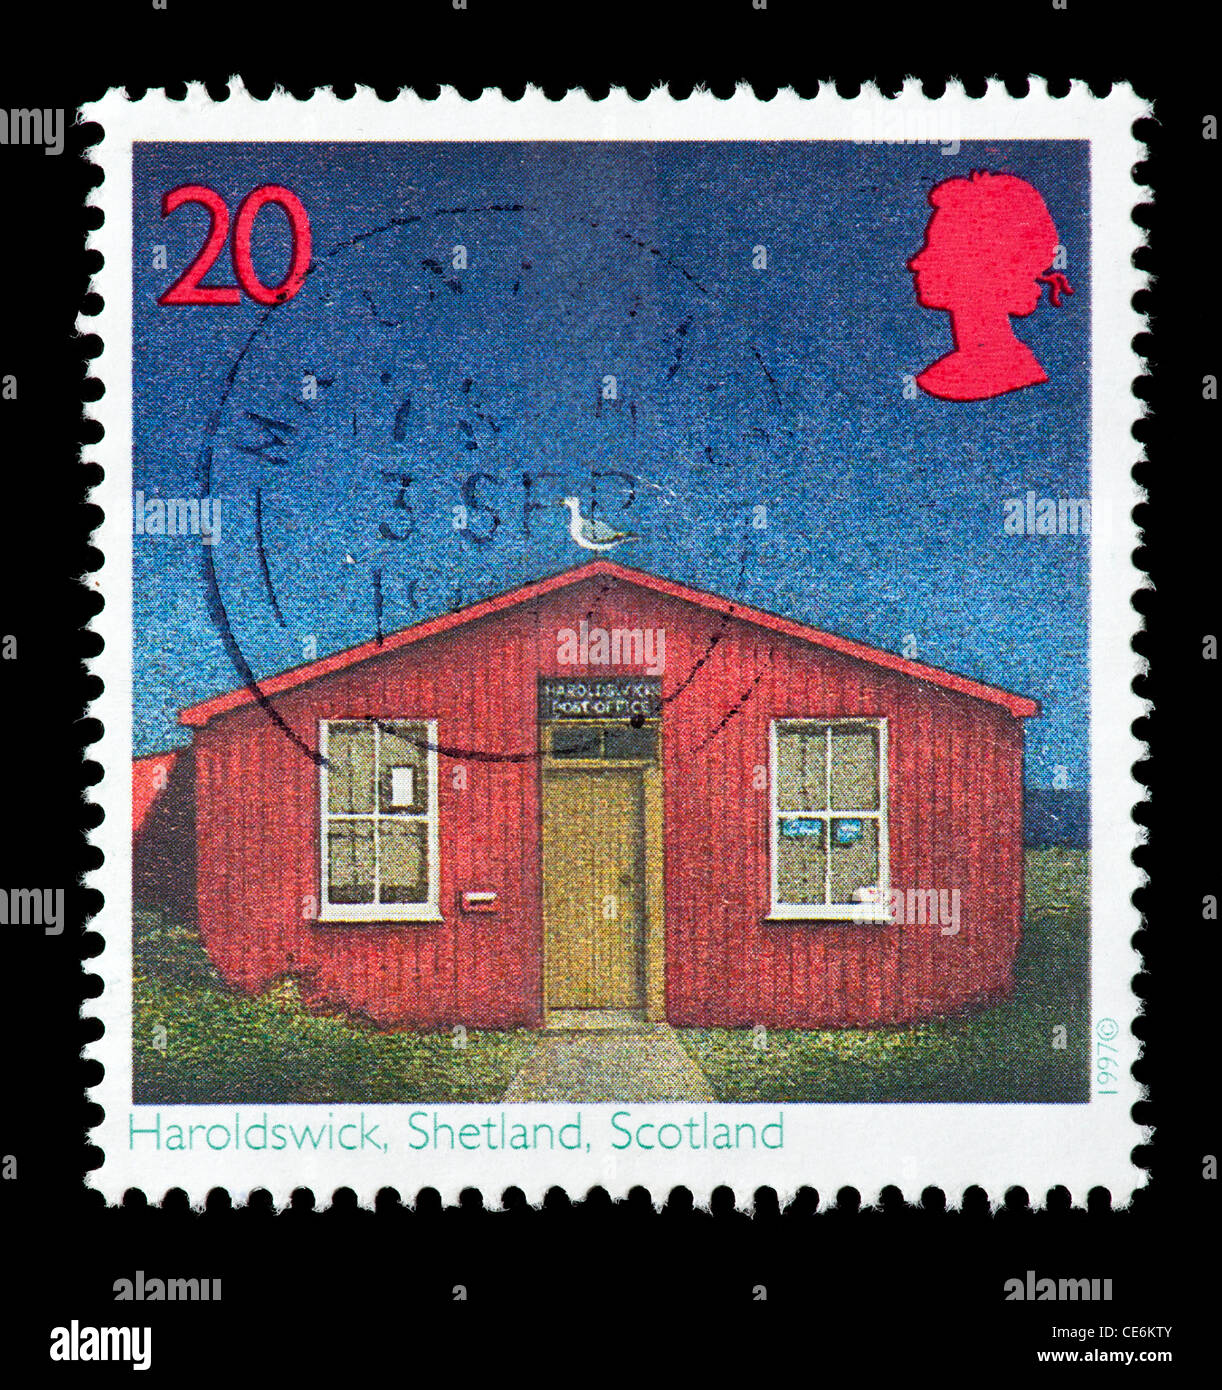 Postage stamp from great britain depicting a post office in stock photo 43173227 alamy - Great britain post office ...